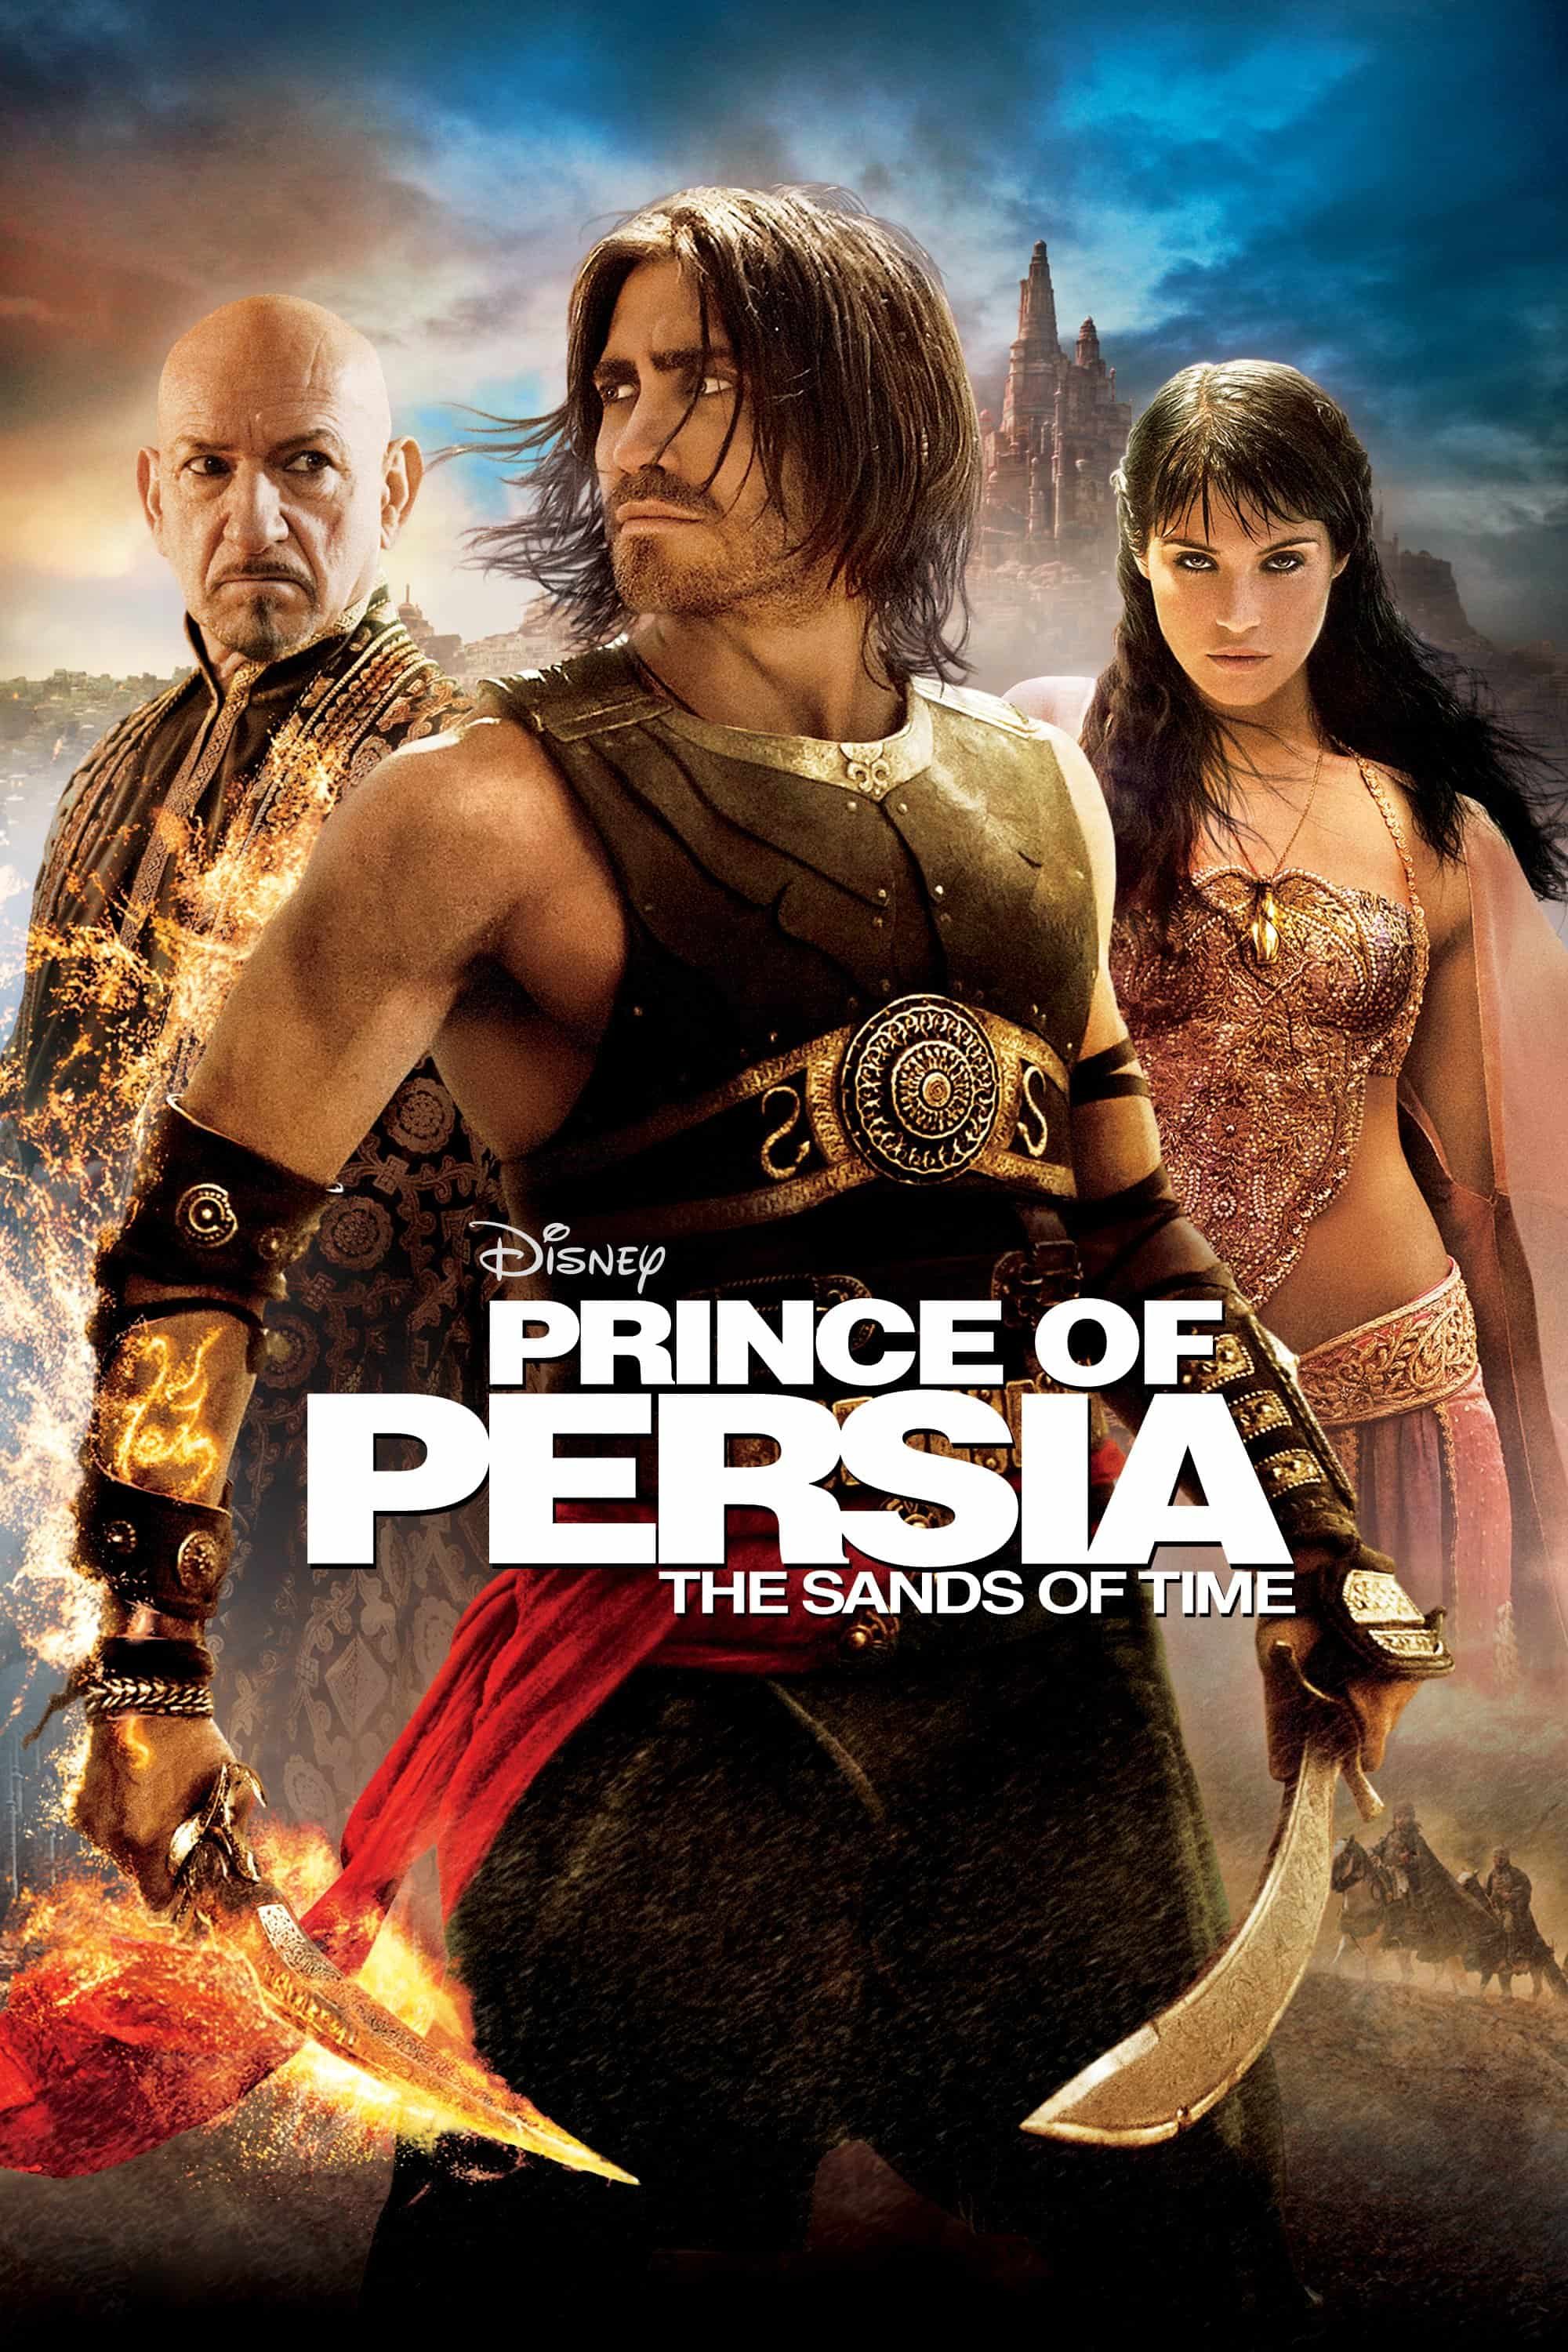 Prince of Persia: The Sands of Time, 2010